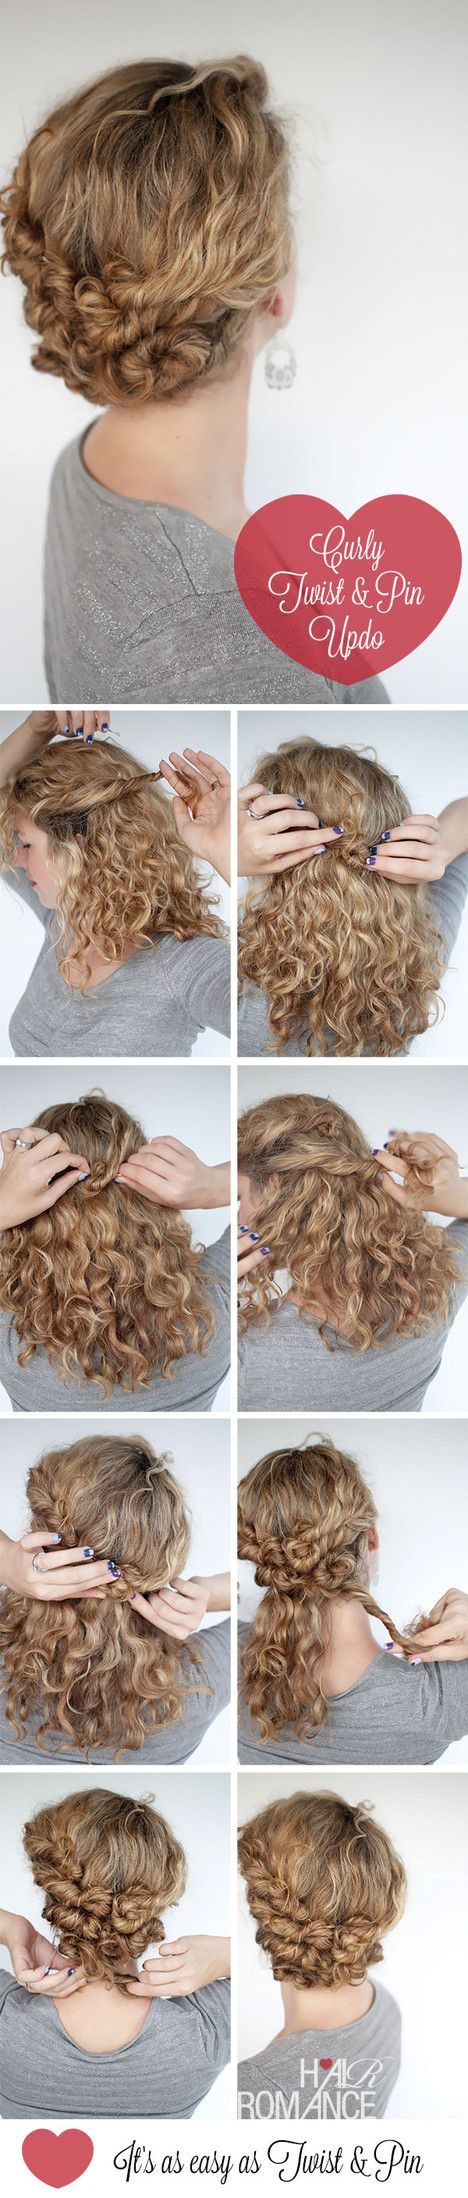 Finally!  Something I can do with my curly hair that looks decent!